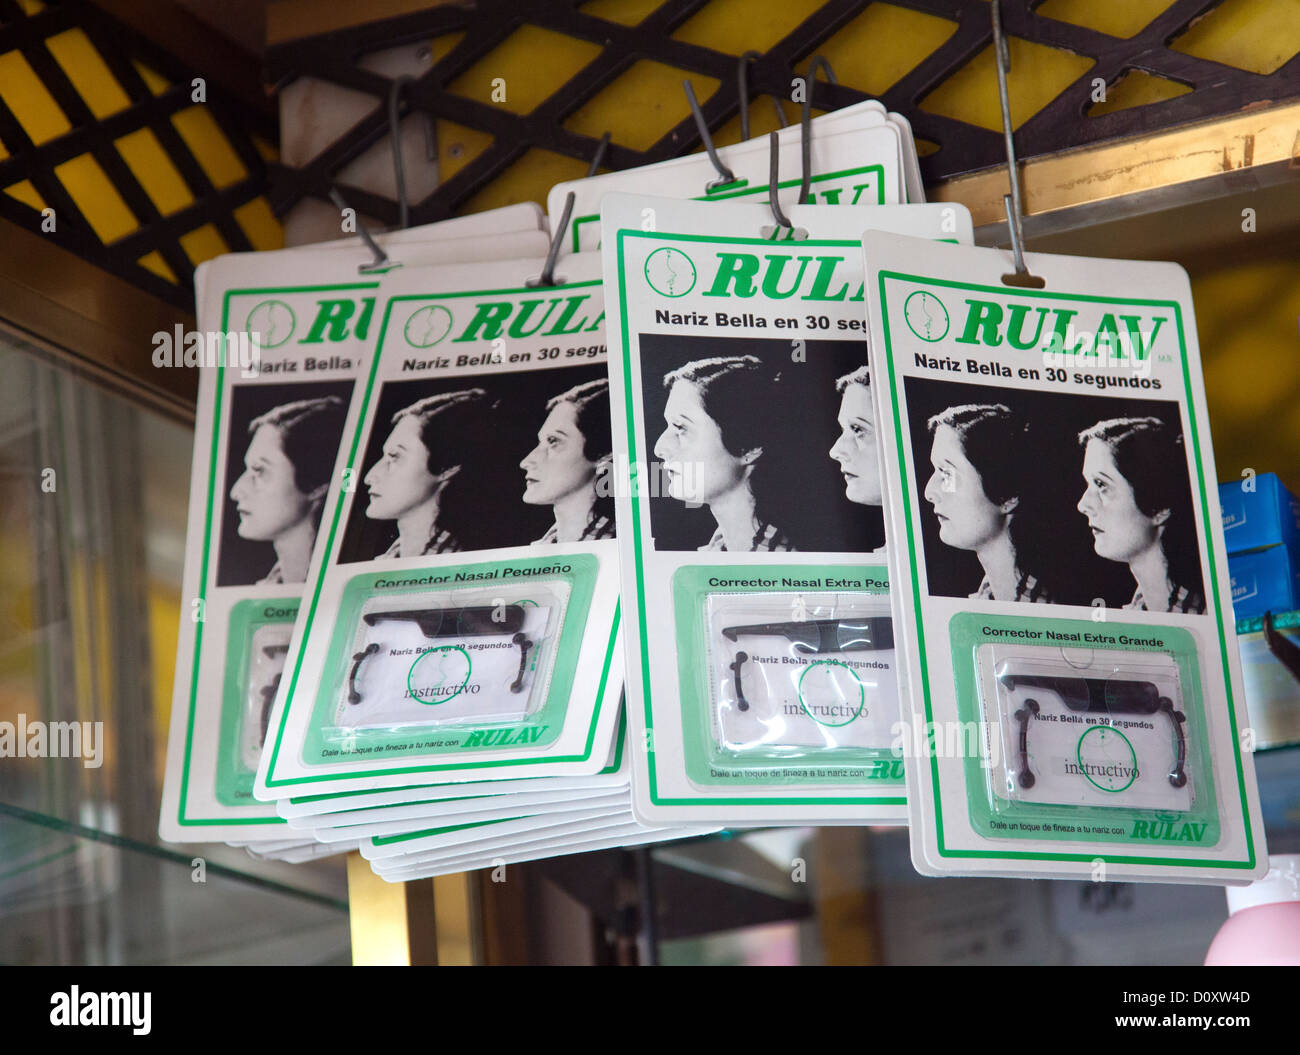 Rulav Nose Corrctors on sale in Pharmacy in Coyoacan in Mexico City DF - Stock Image